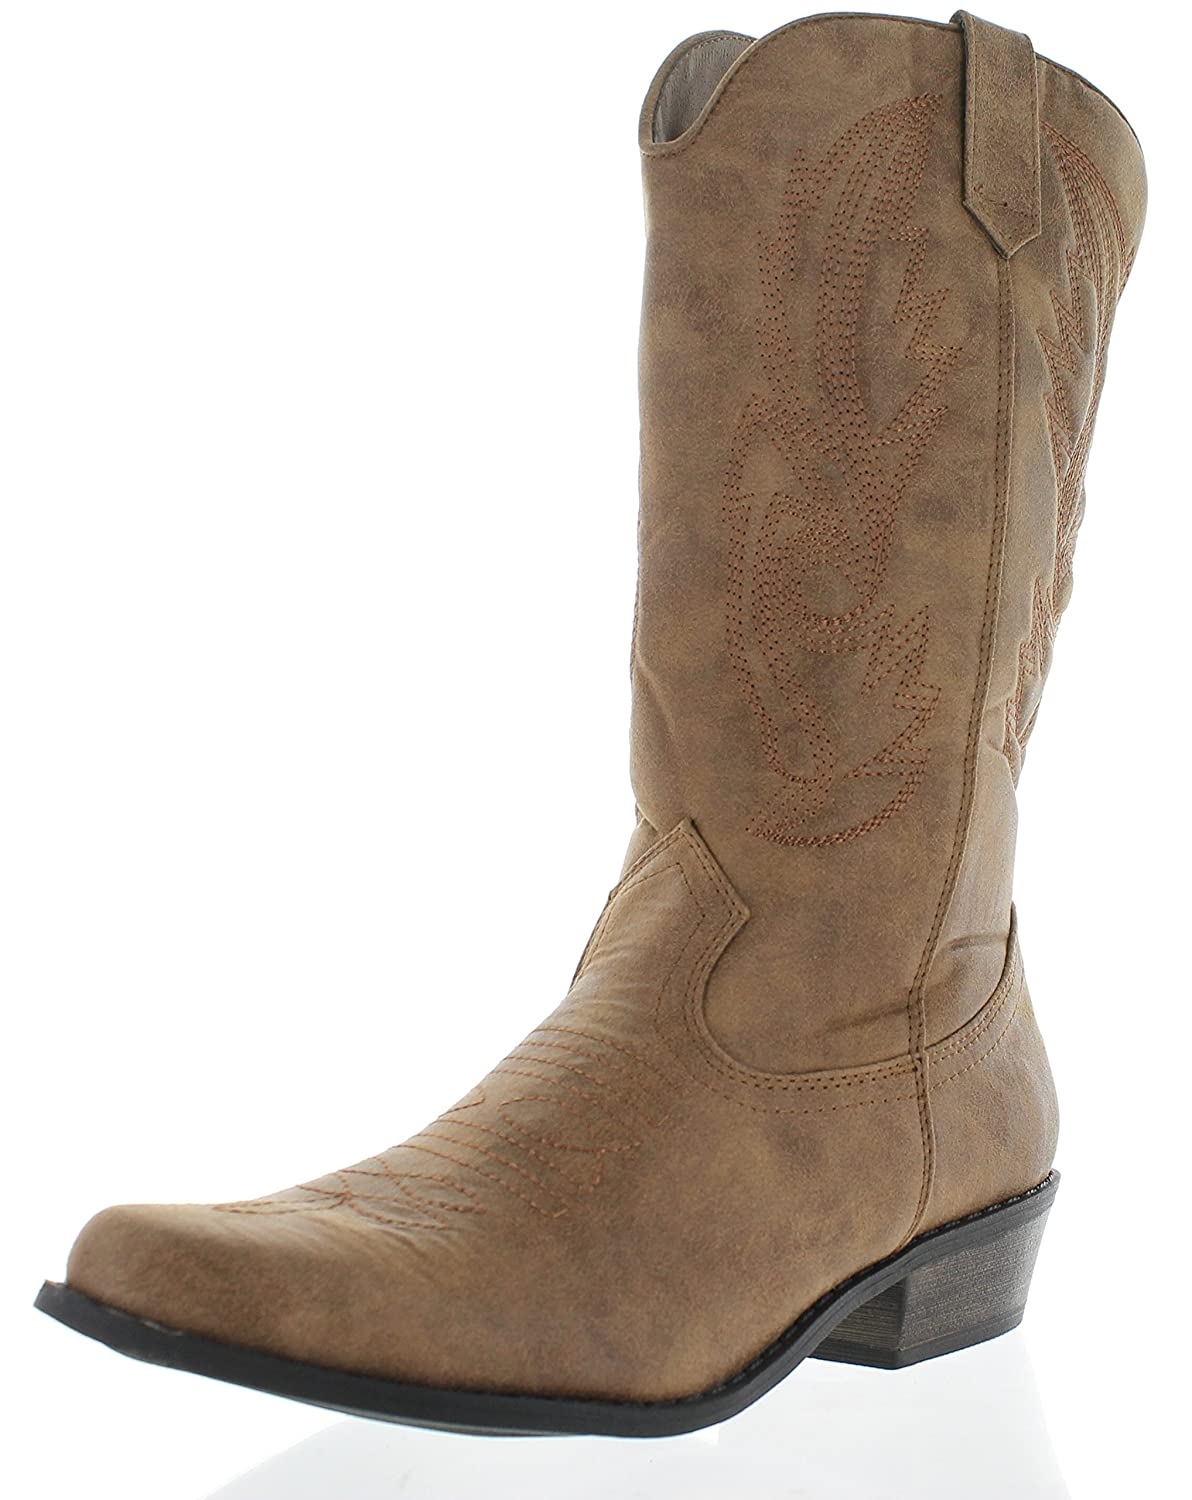 83a72196f0a Coconuts By Matisse Women's Gaucho Boot